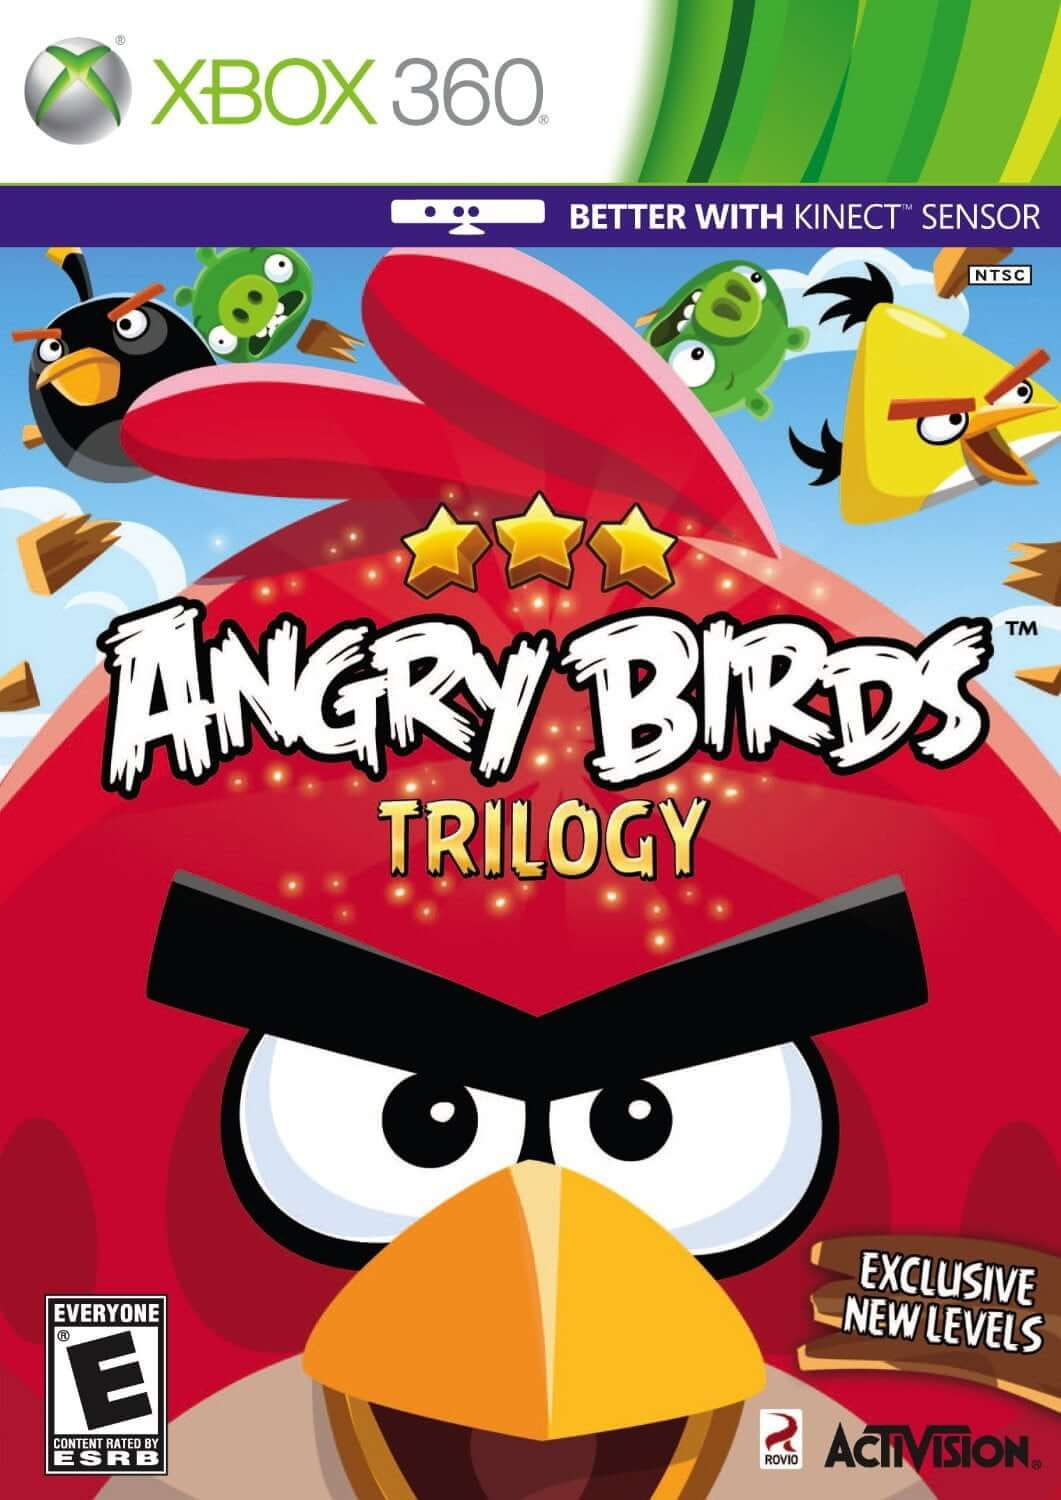 Buy Angry birds(PS4) a XBOX 360 Game from ShamyStores - Shamy Stores